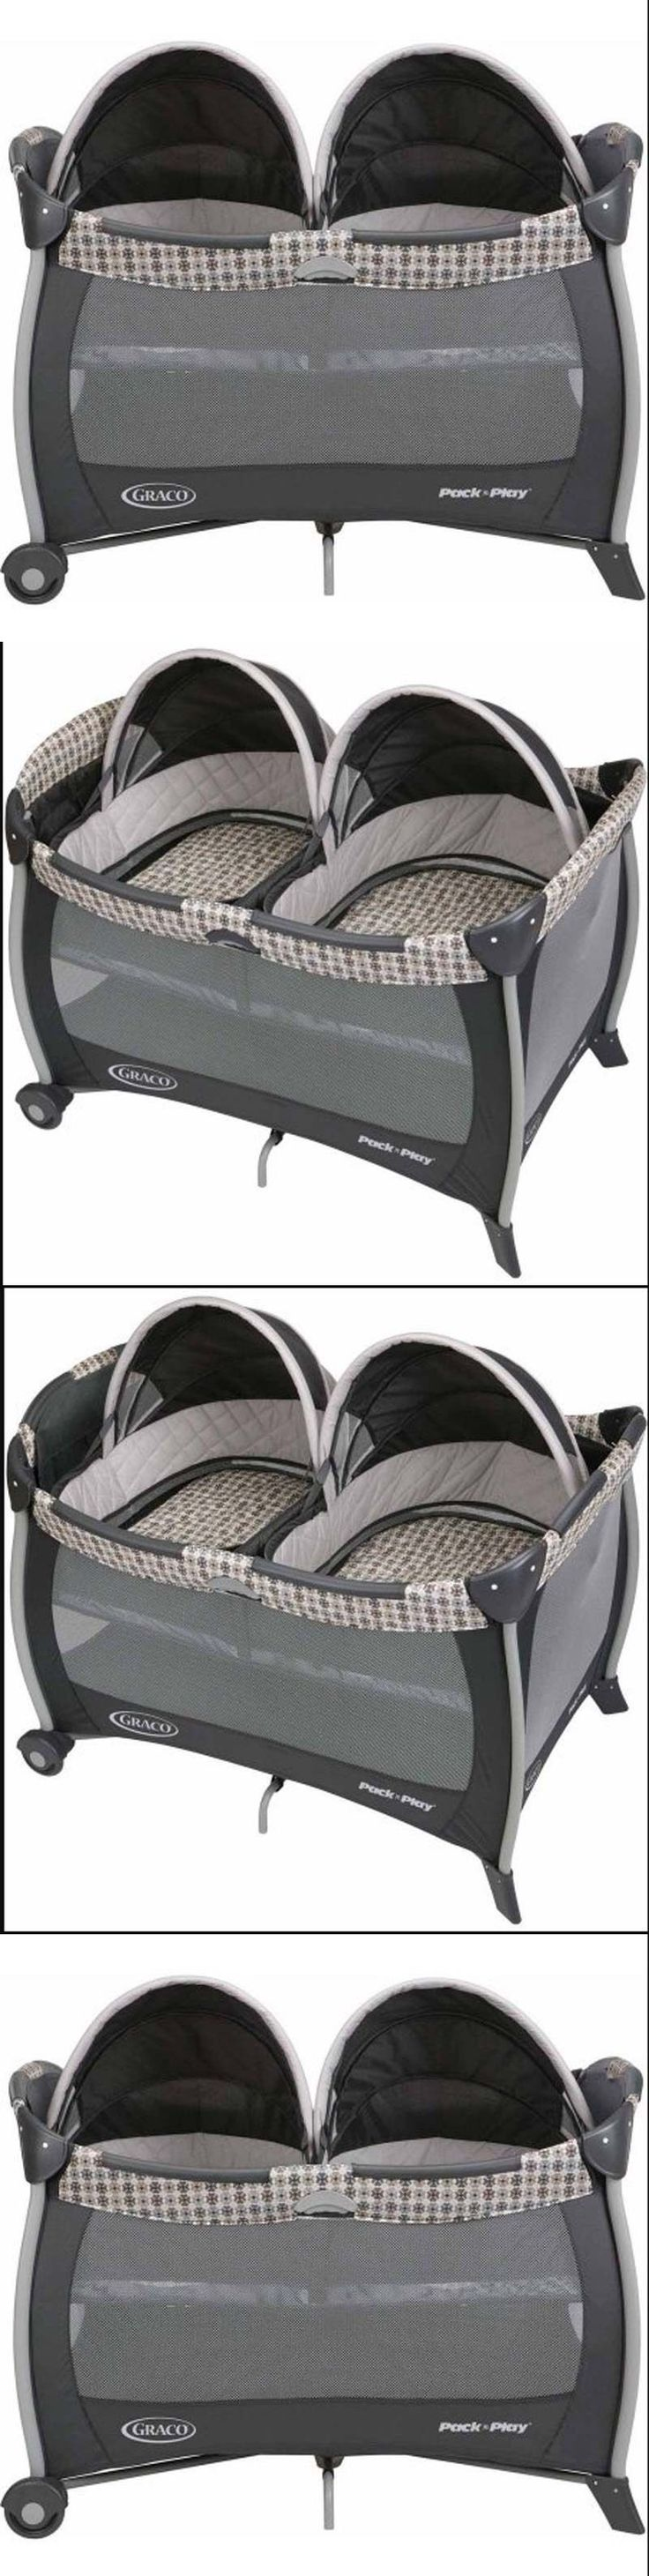 Used crib for sale toronto - Baby Nursery Twin Bassinet Playard For Baby Portable Infant Bed Removable Quilted Twin Crib